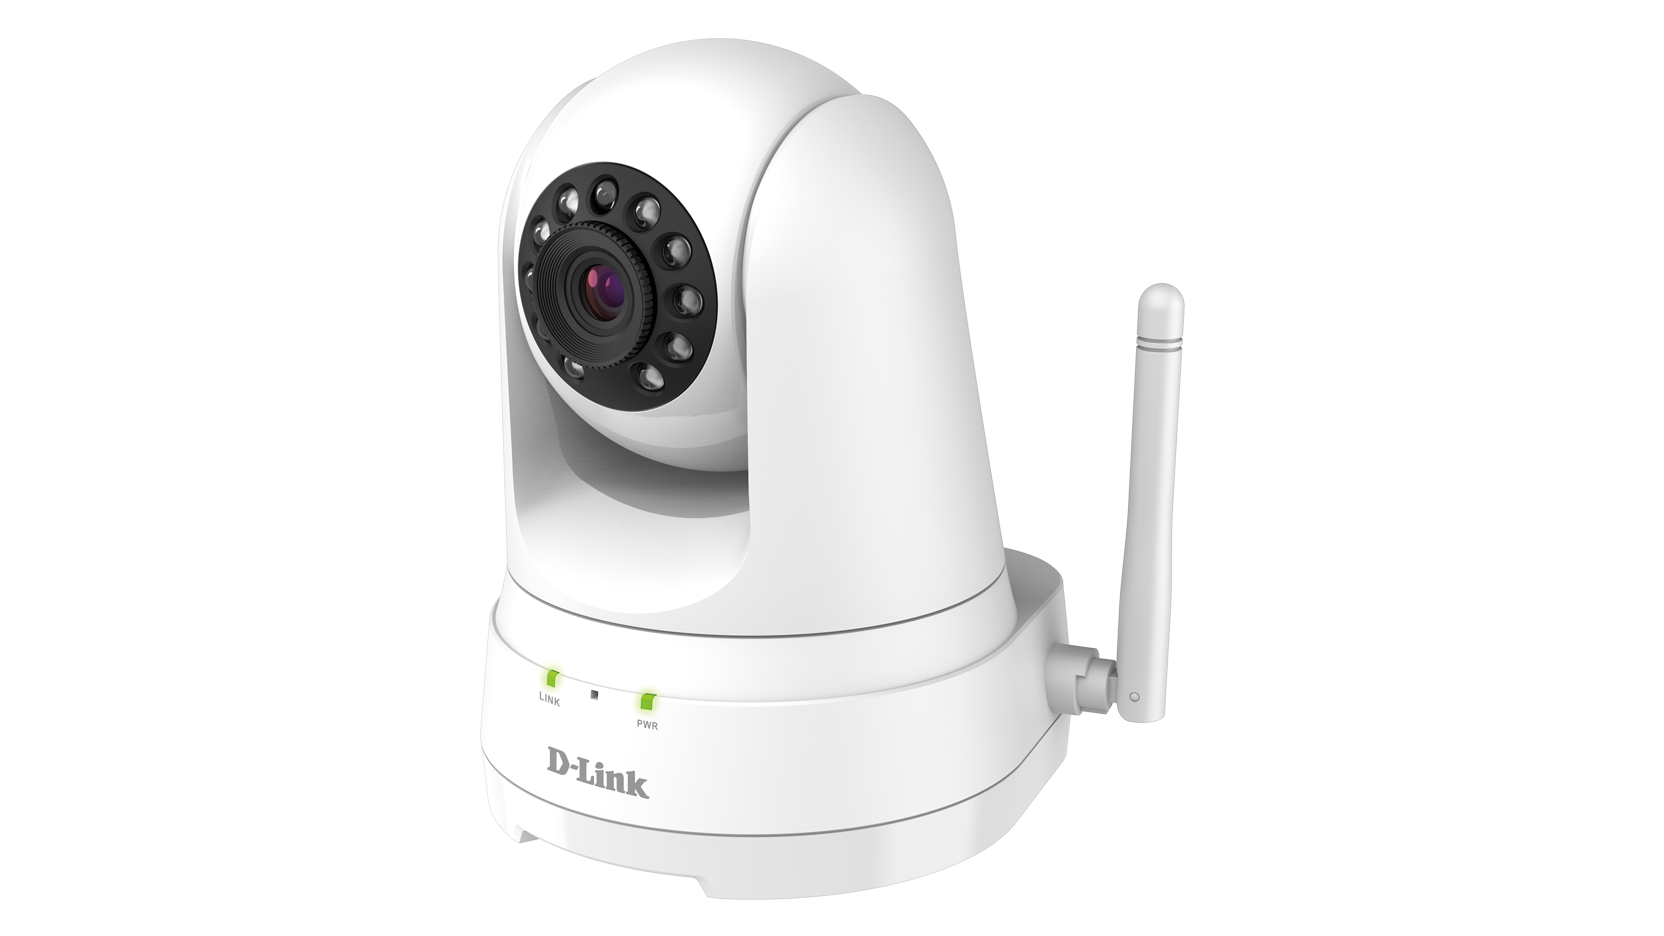 342940166 DCS-8525LH left · DCS-8525LH back. Overview  Features  Specifications   Videos. D-link. Meet the Full HD Pan   Tilt Wi-Fi Camera.